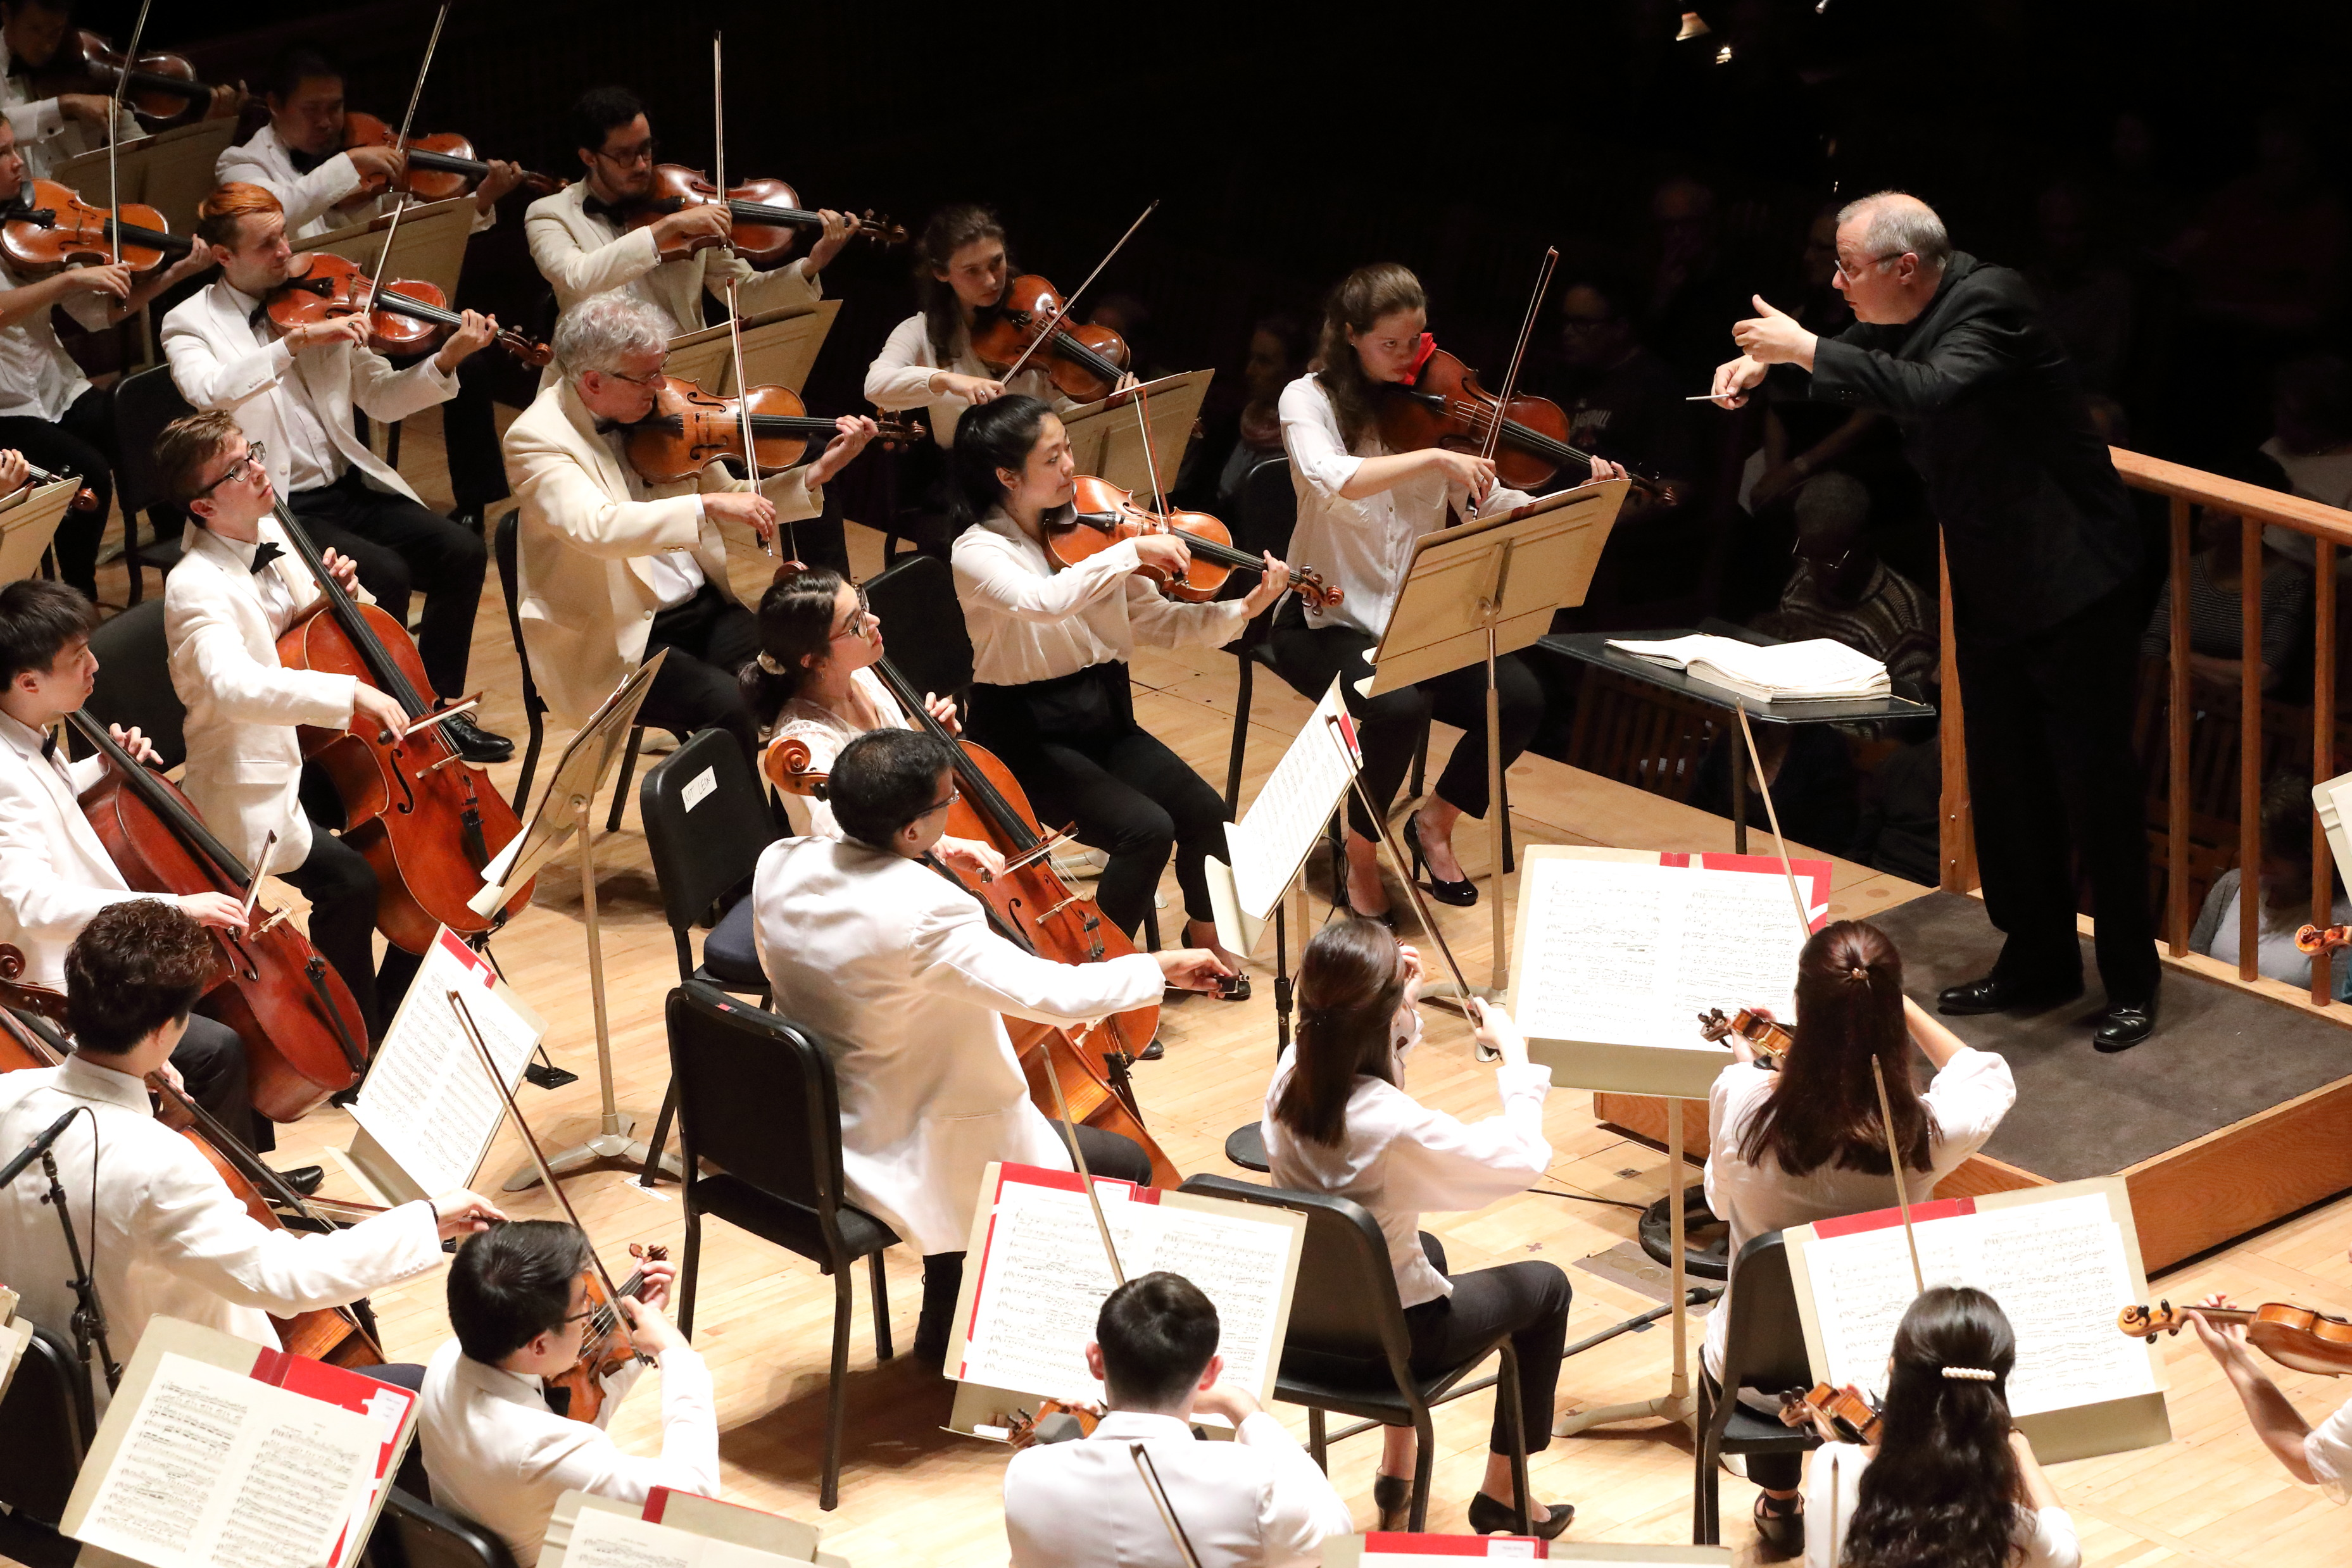 Stefan Asbury conducts Tchaikovsky, Symphony No. 6 with the TMC Orchestra. Photo Hilary Scott.